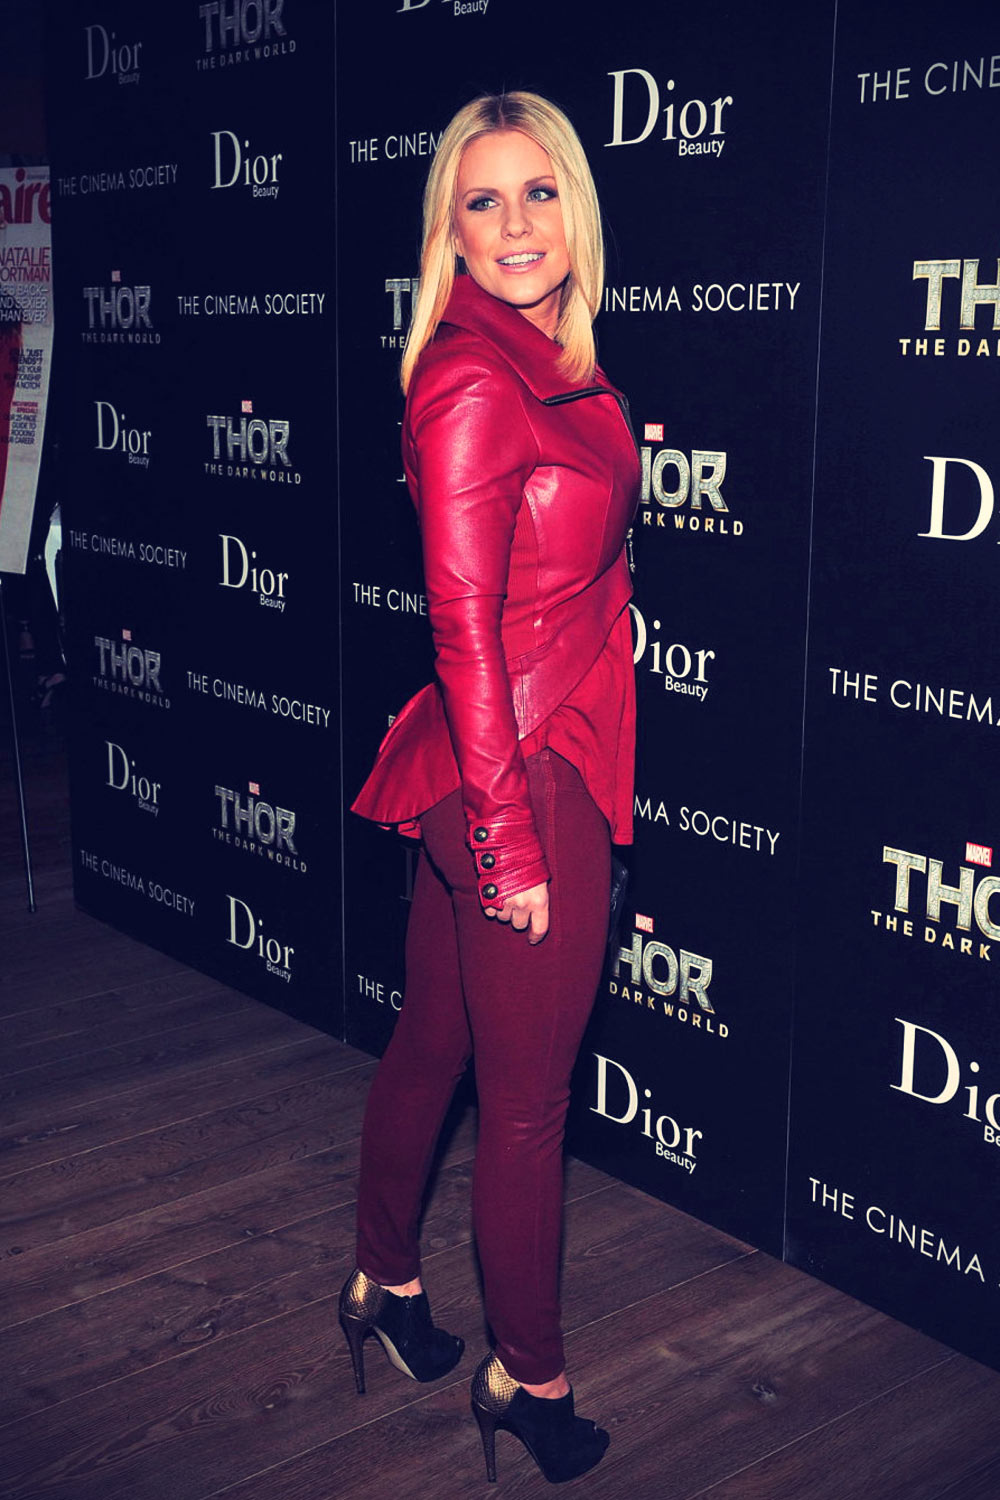 Carrie Keagan attends a screening of Thor The Dark World